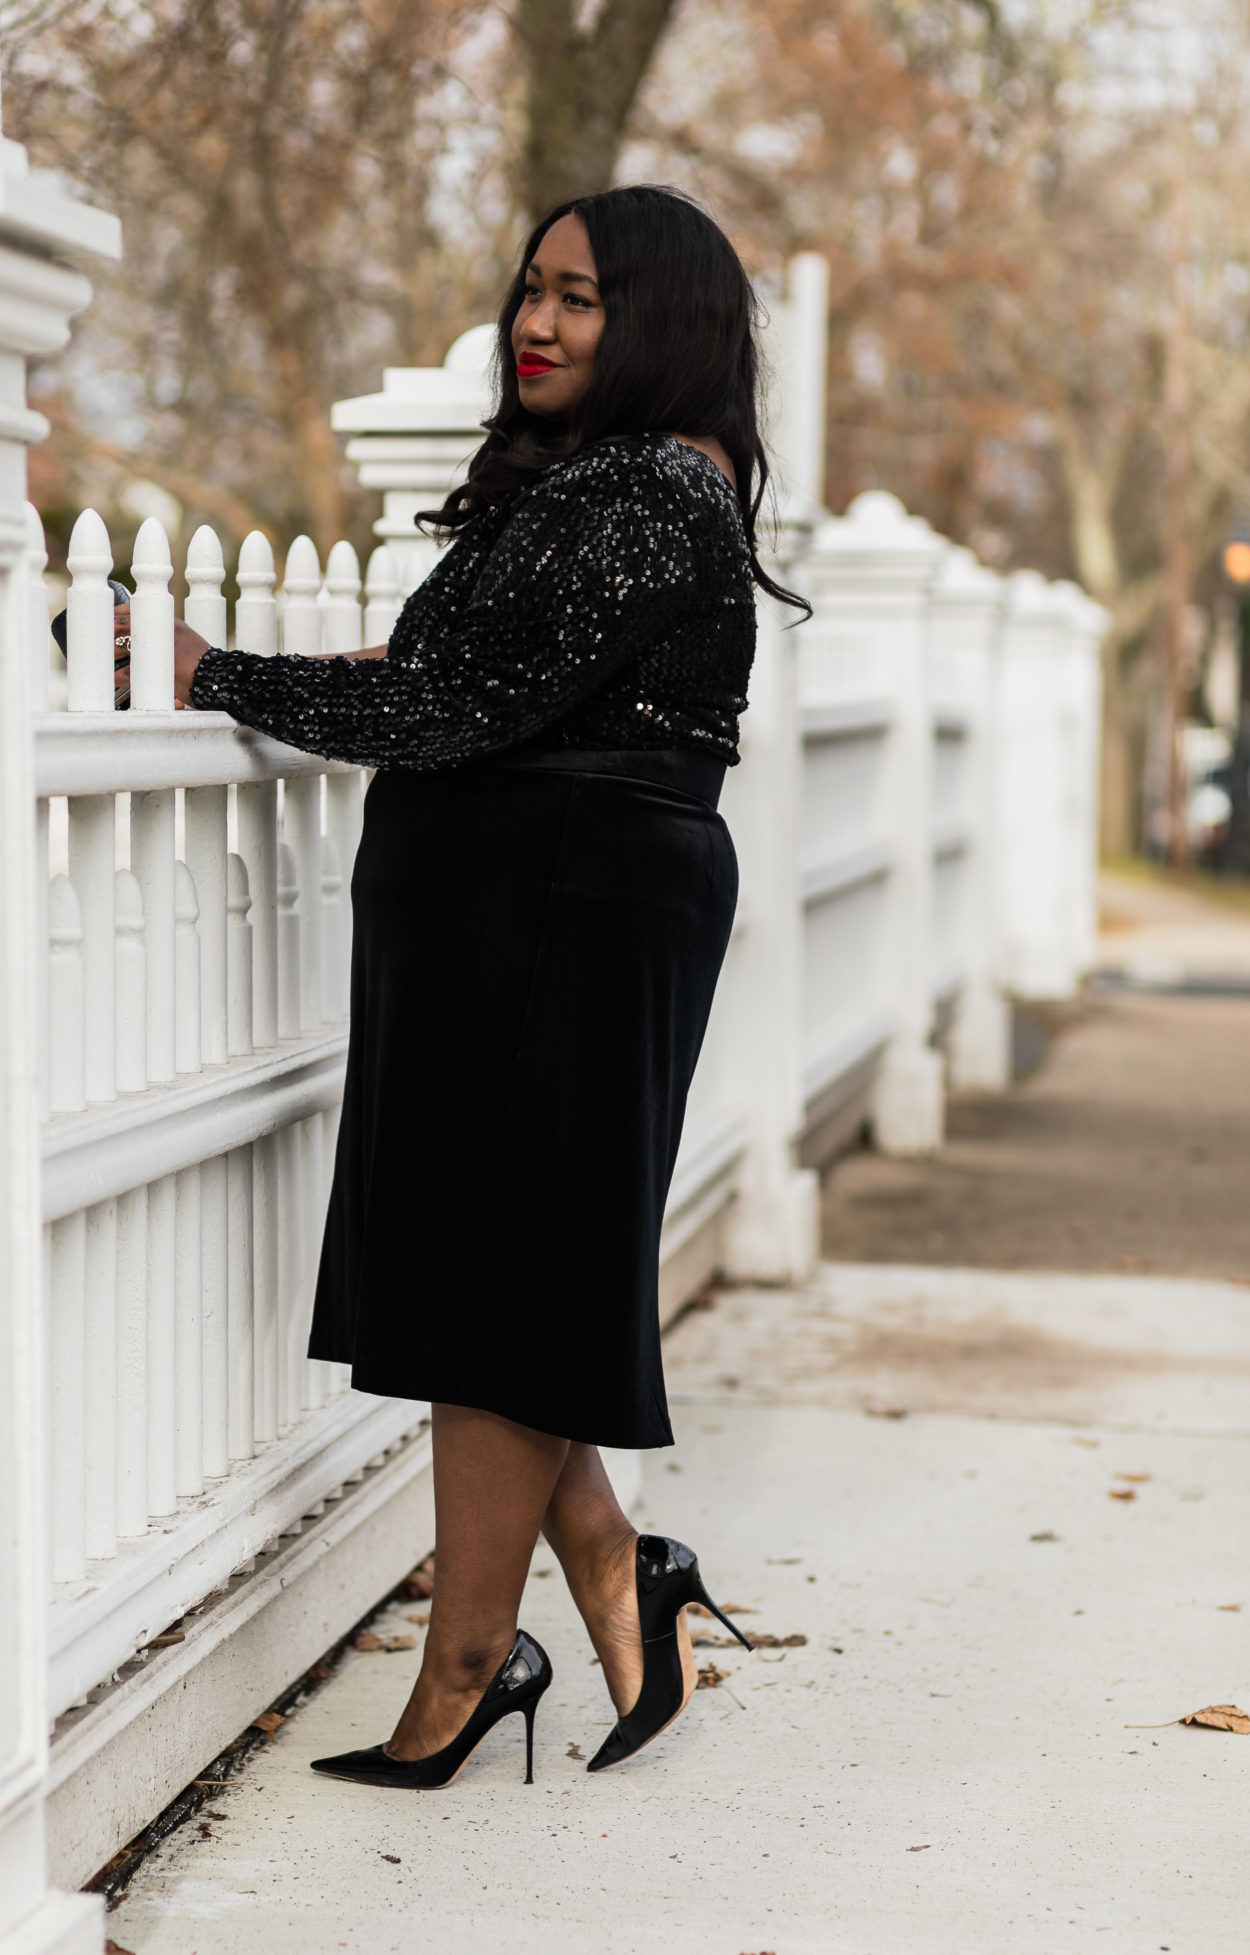 what-to-wear-nye-plus-size-fashion-blog - Shapely Chic Sheri ...